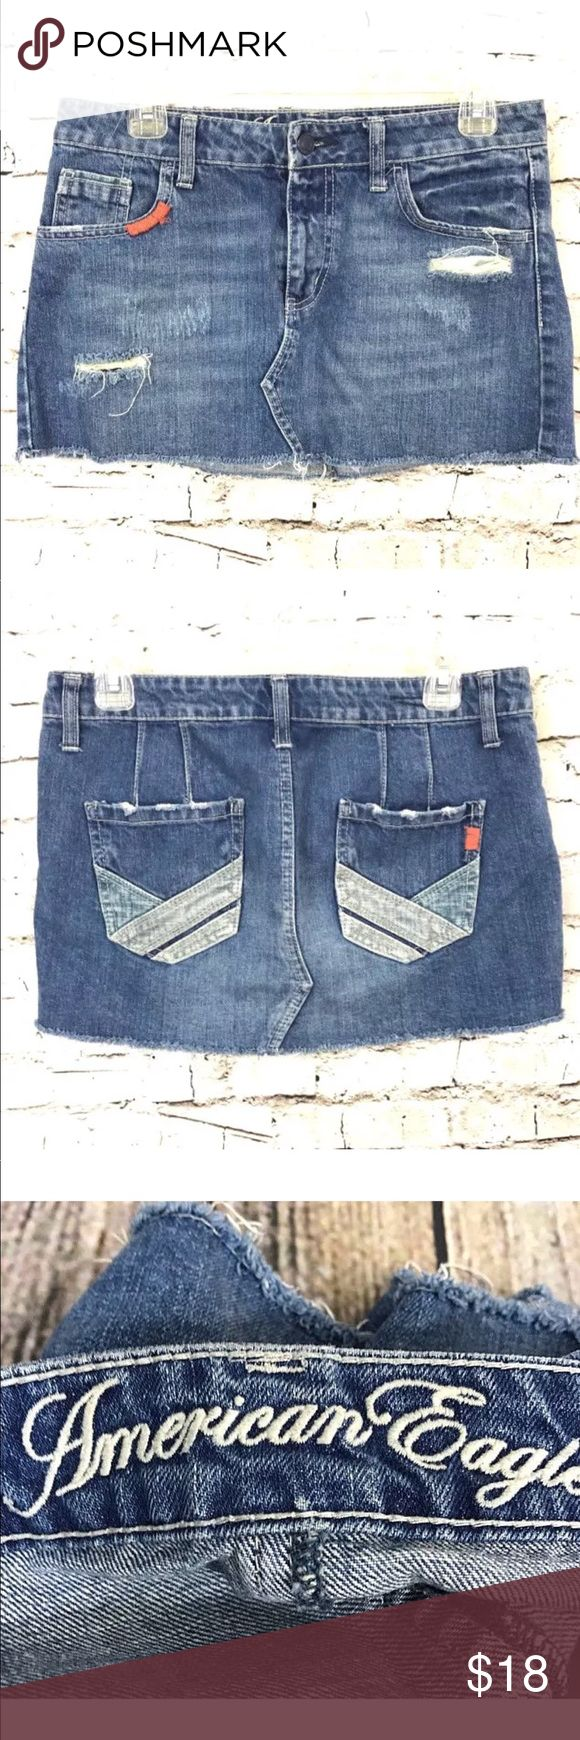 """{American Eagle} Mini Skirt Destroyed Denim Size 6 American Eagle Jean Skirt  Women's Size 6 100% Cotton Denim Distressed / destroyed denim Zip fly / button closure 5 pocket style Above knee mini length Waist = 30"""" Length = 11.5 Pre-owned condition without flaws   Thank You For Your Business! American Eagle Outfitters Skirts Mini"""